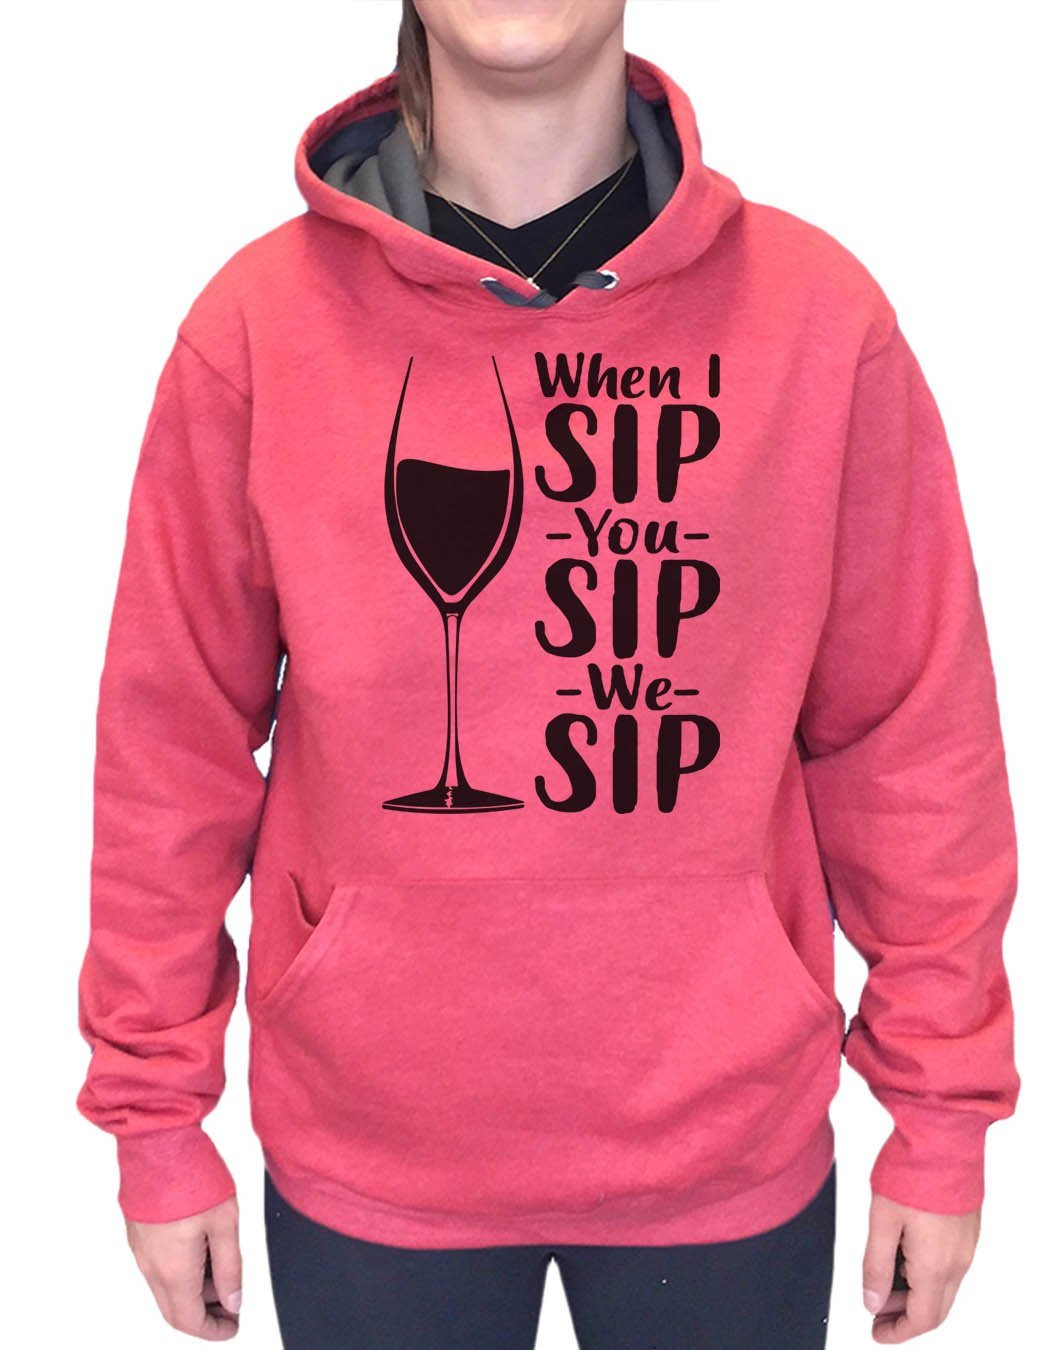 UNISEX HOODIE - When I Sip You Sip We Sip - FUNNY MENS AND WOMENS HOODED SWEATSHIRTS - 2167 Funny Shirt Small / Cranberry Red